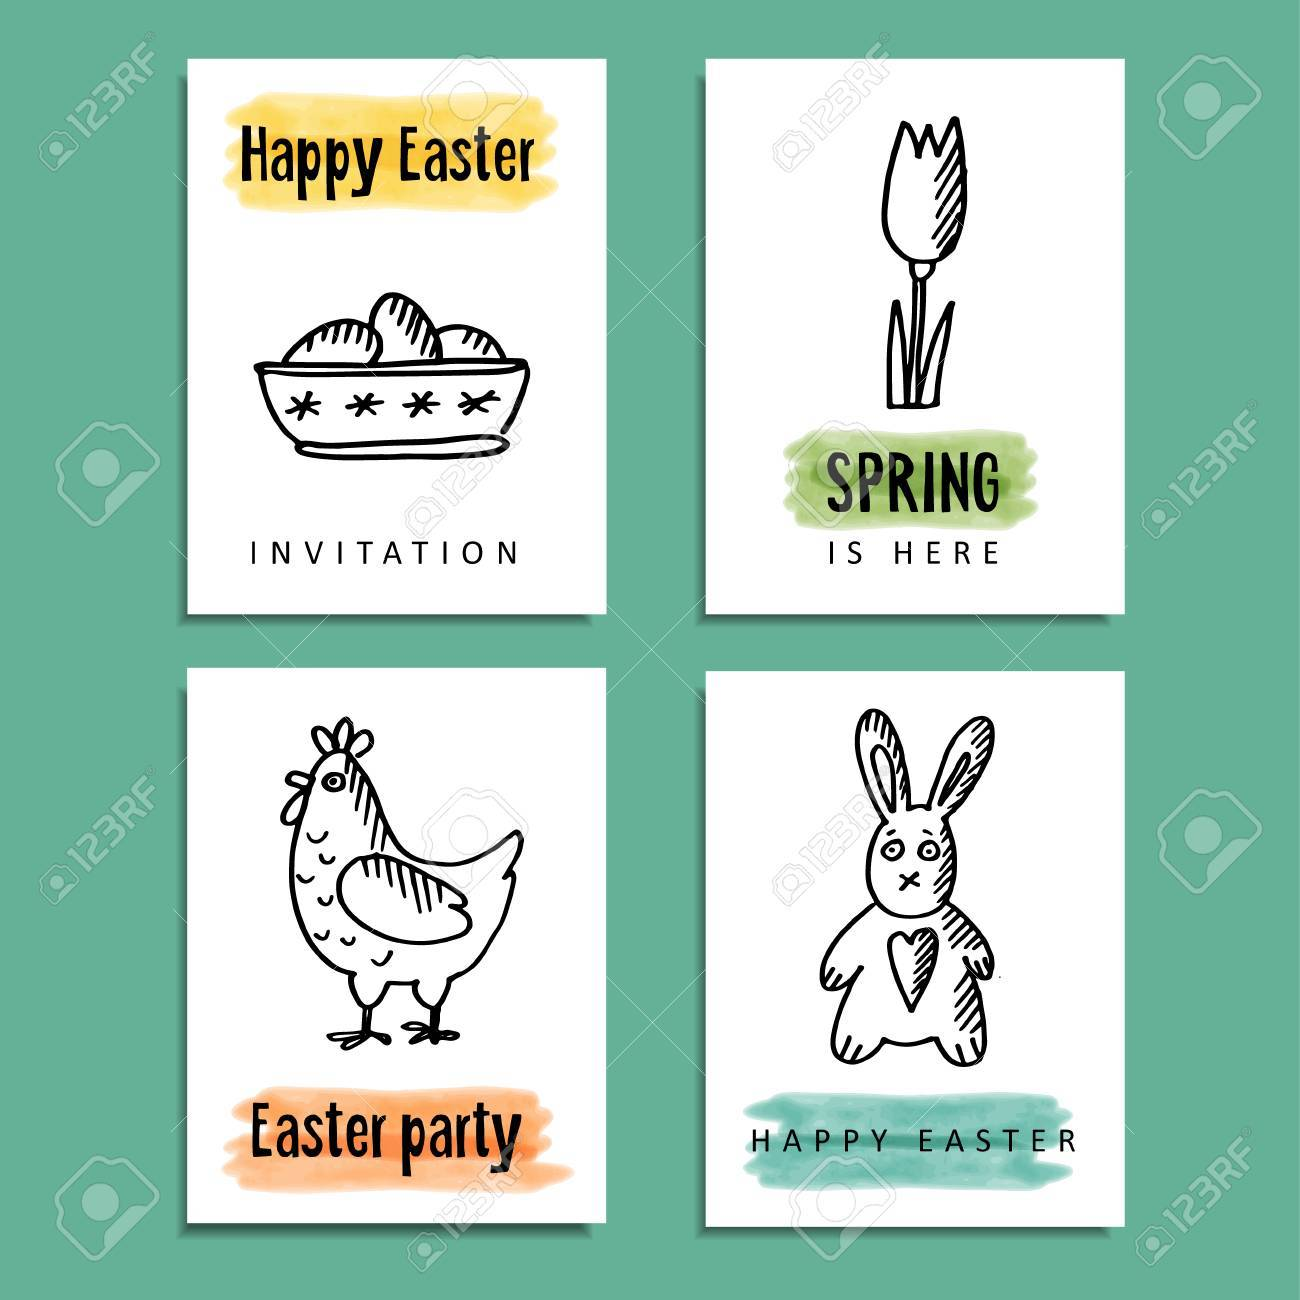 Set Of Funny Spring Easter Greeting Cards With Doodle Illustrations